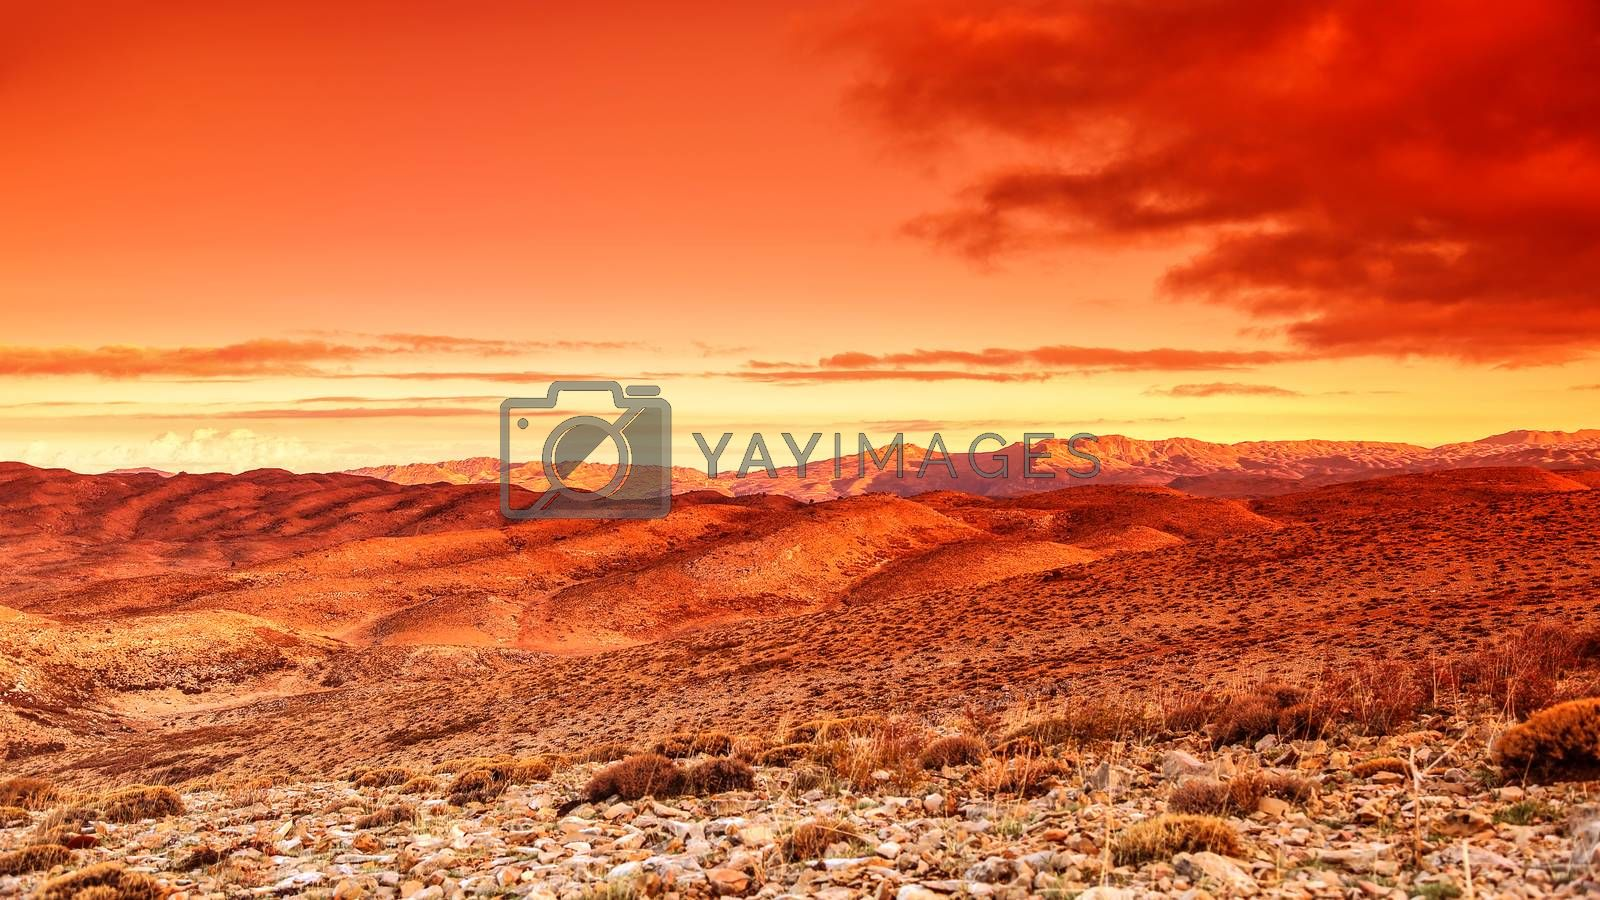 Futuristic landscape, beautiful dramatic red sunset over hot dry wild desert, amazing lands of wilderness